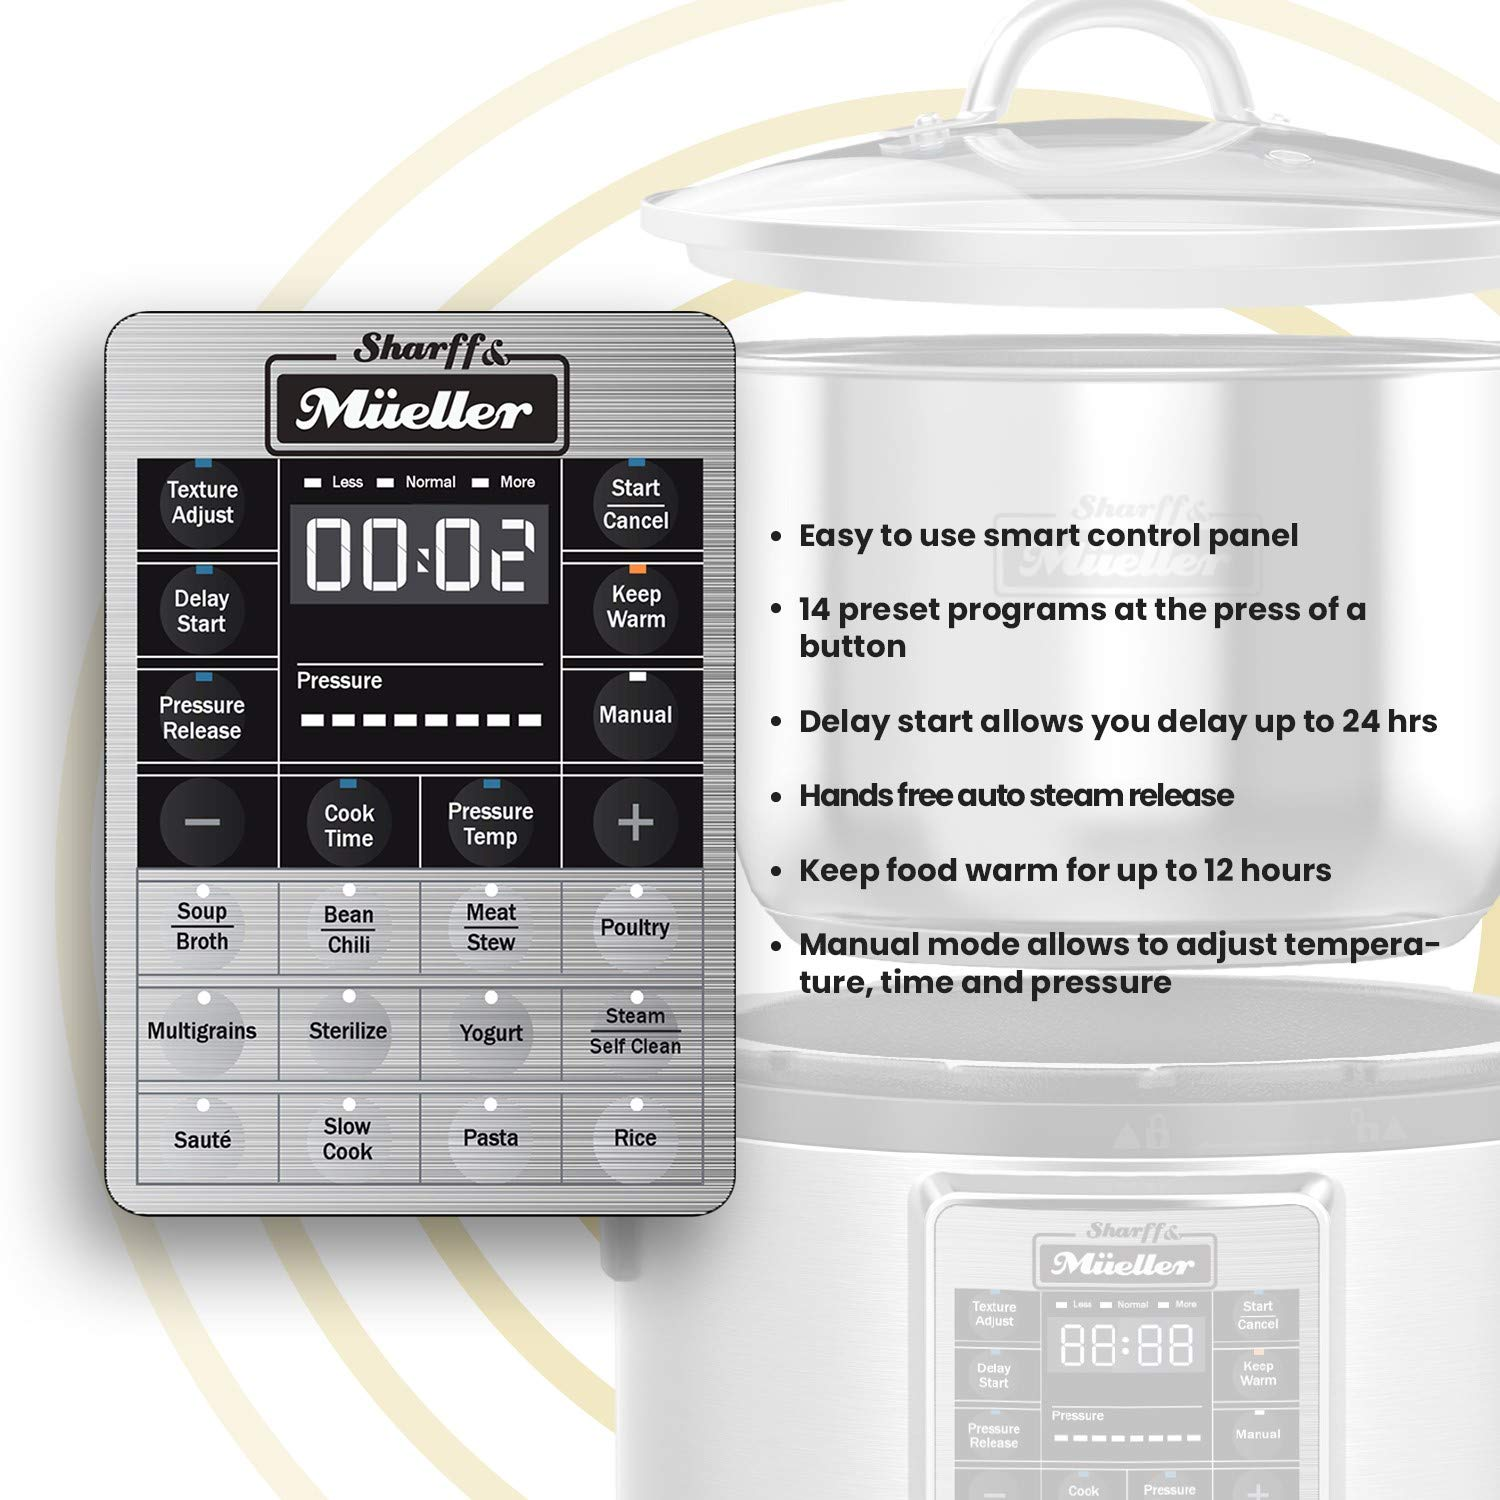 Electric Pressure Cooker 6 Quart Stainless Steel 12 in 1 Programmable Multipot Cooker Duopro RecipeBook Included by Sharff and Mueller by Sharff & Müeller (Image #4)